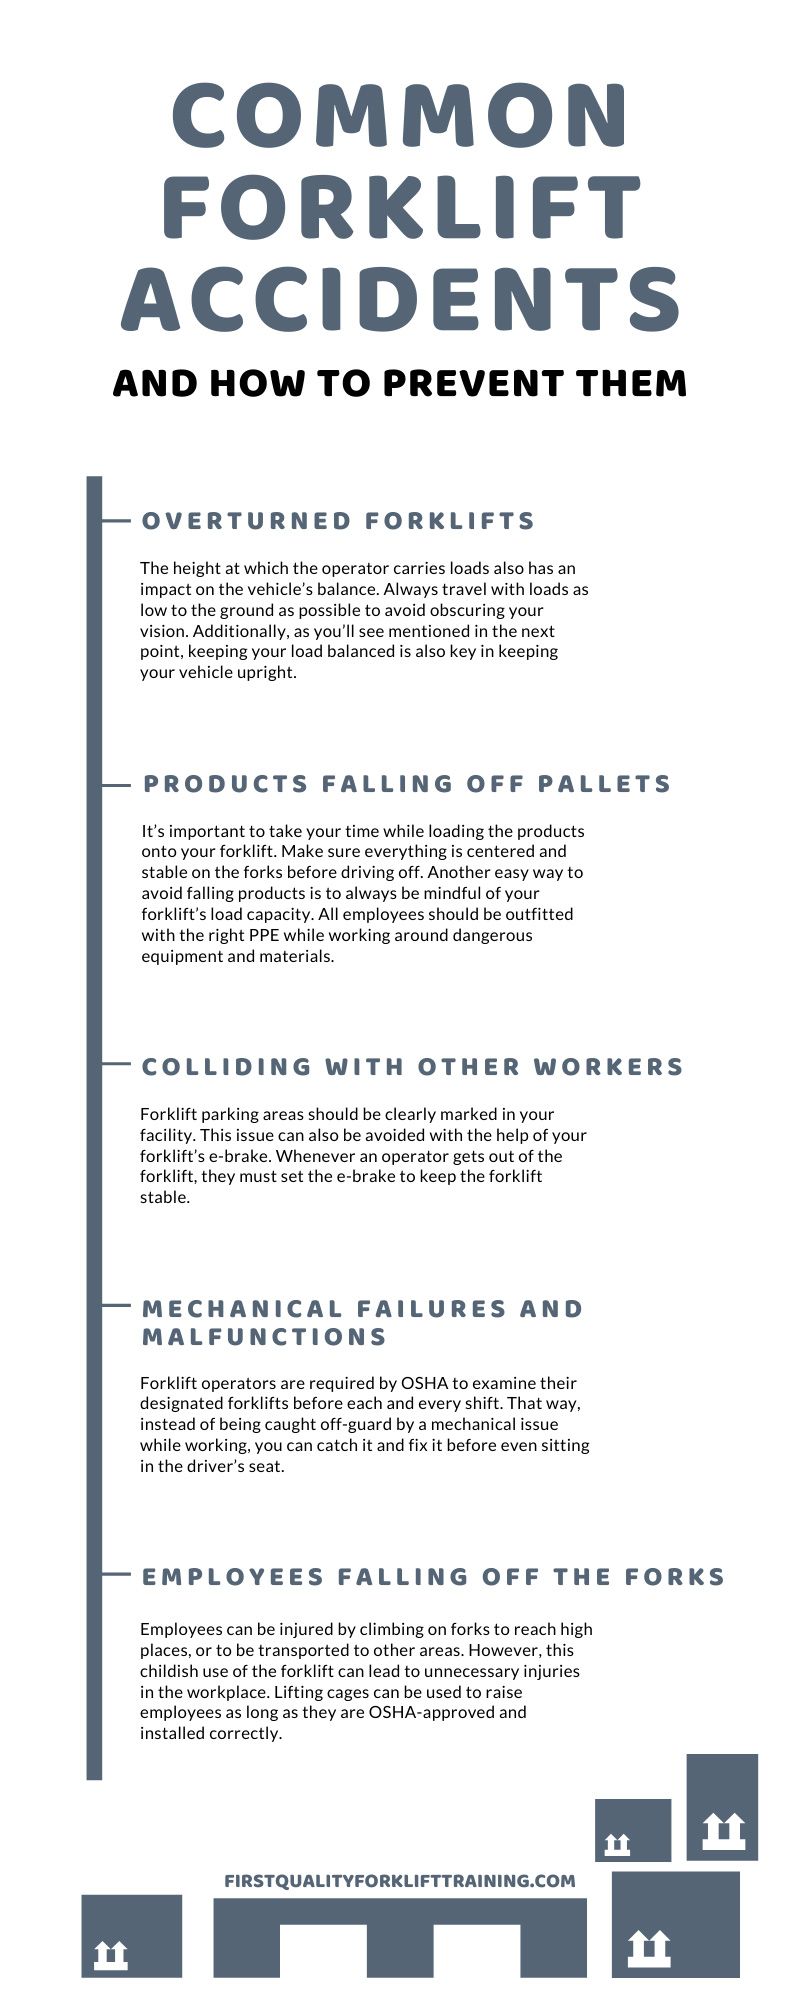 Common Forklift Accidents and How to Prevent Them infographic